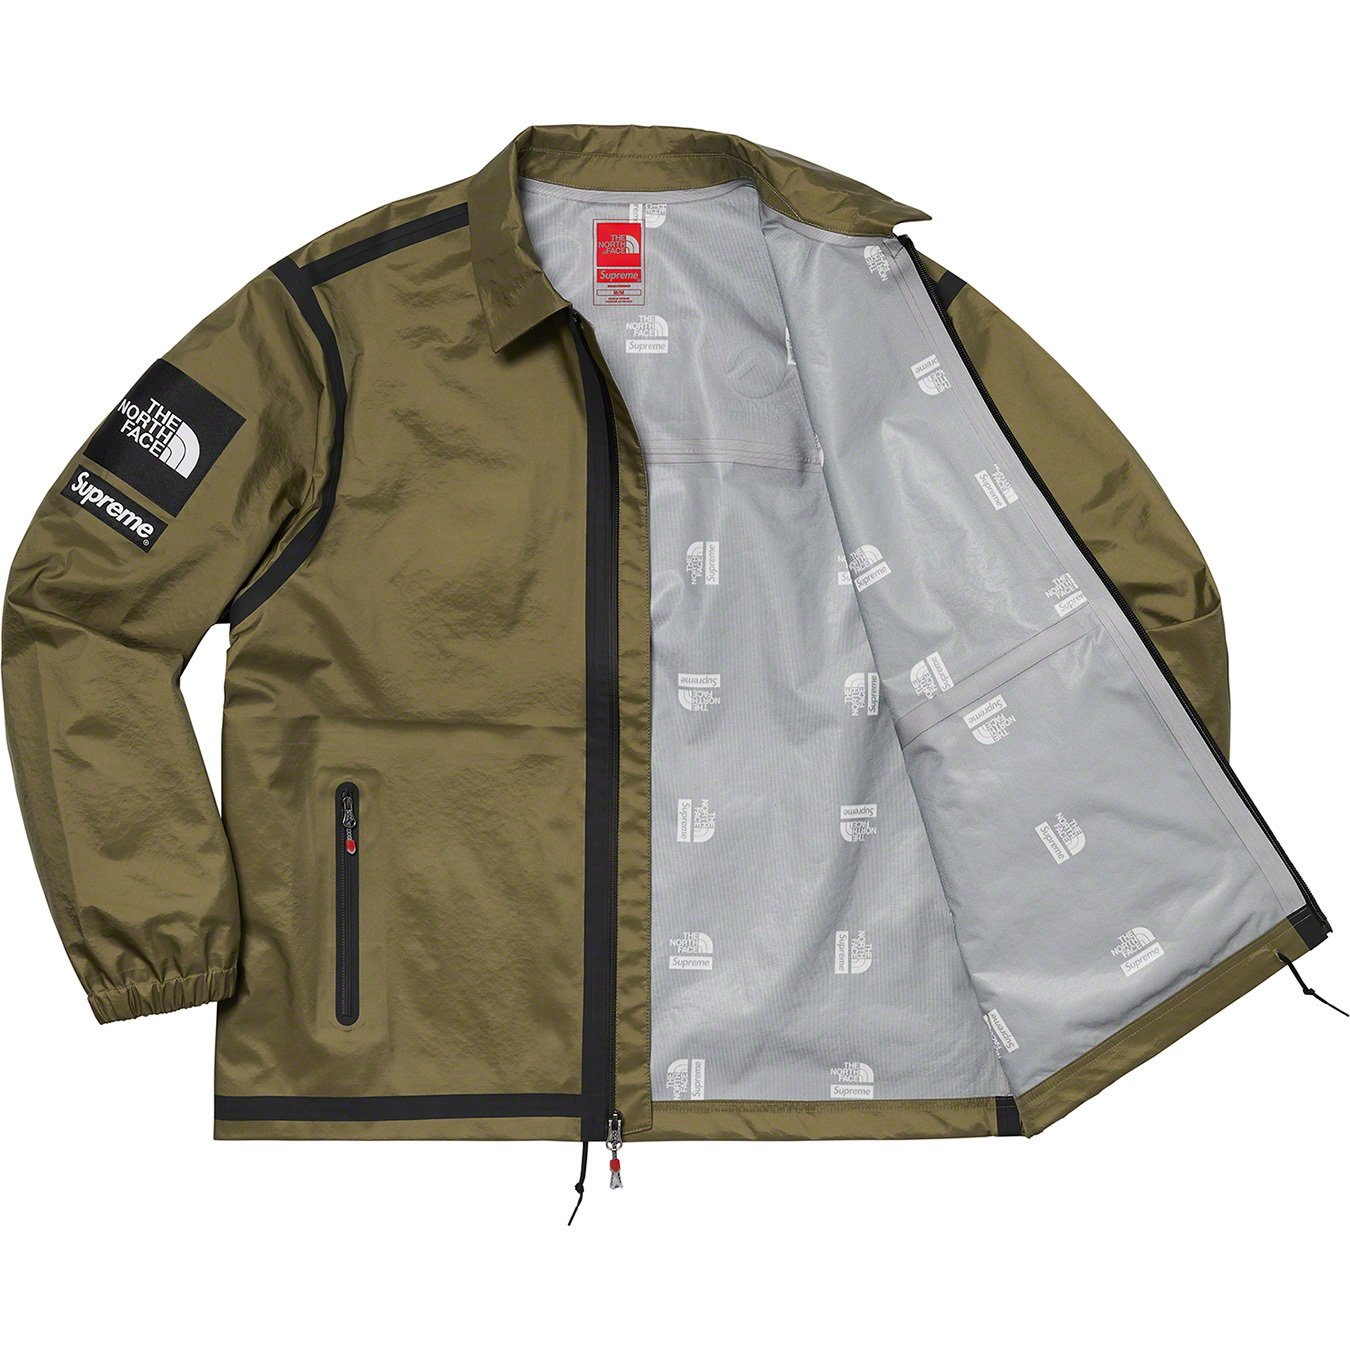 supreme-the-north-face-summit-series-outer-tape-seam-collection-release-21ss-20210529-week14-coaches-jacket